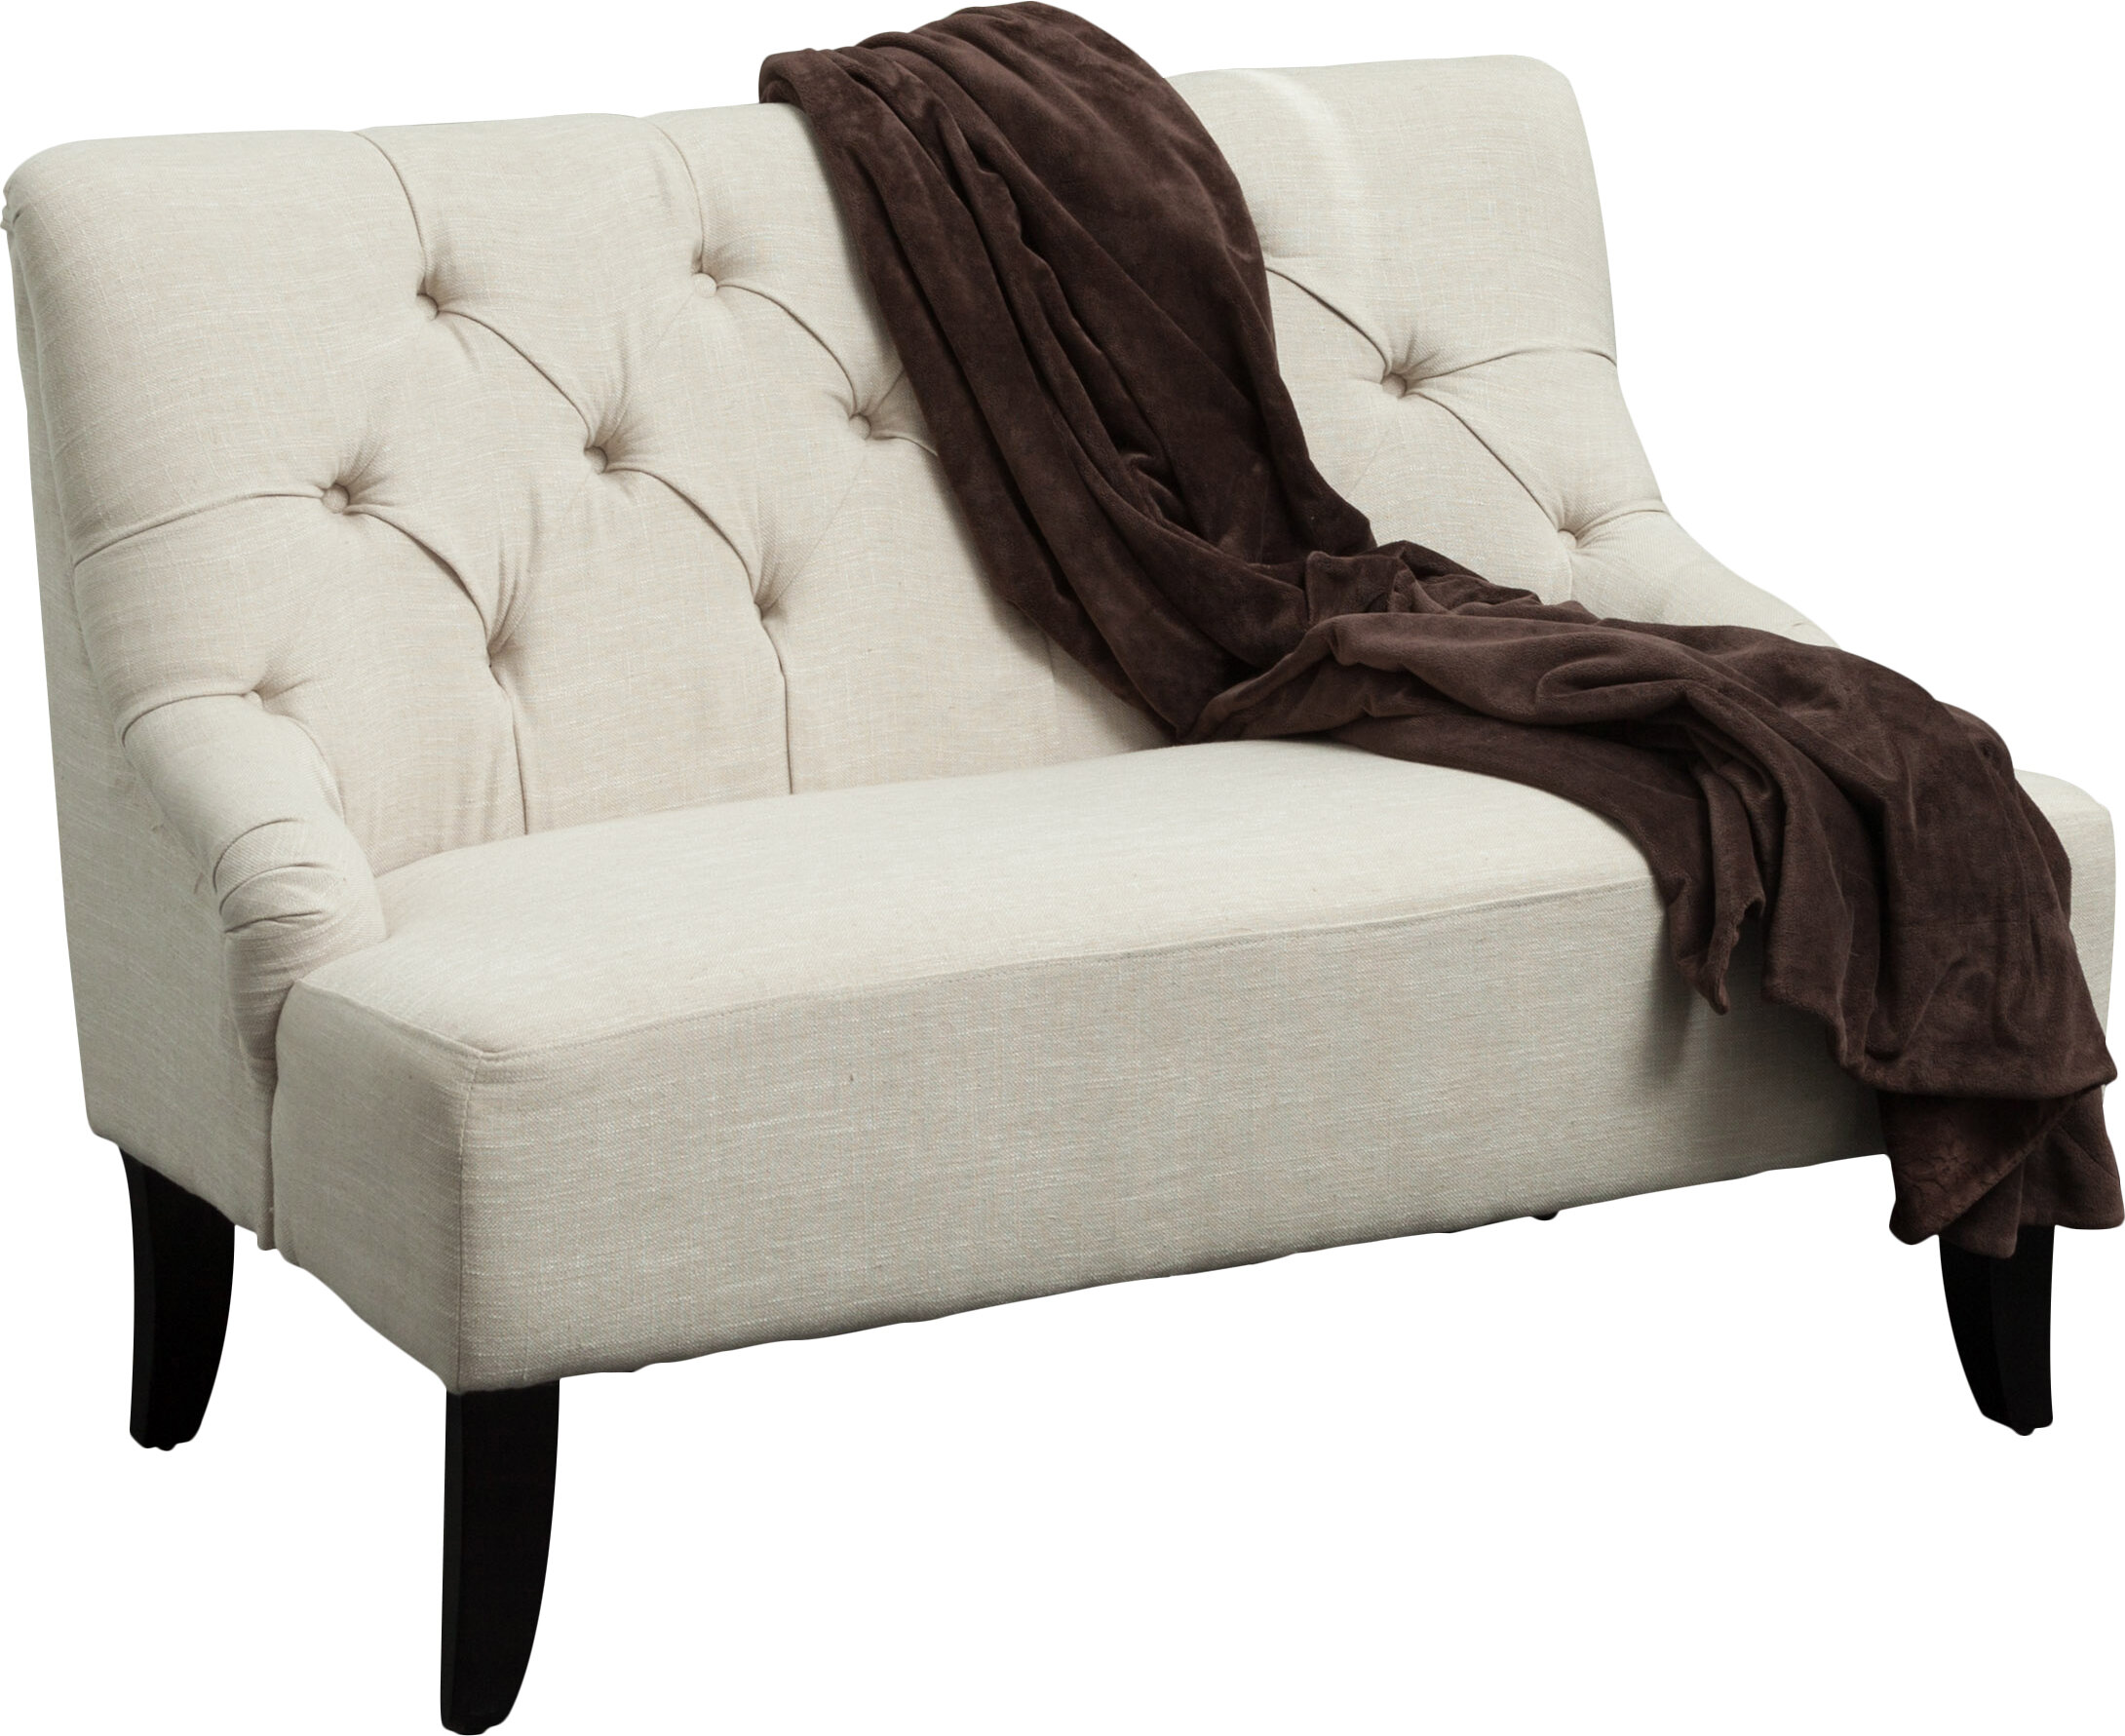 Narla 2 Seater Sofa. By Noble House